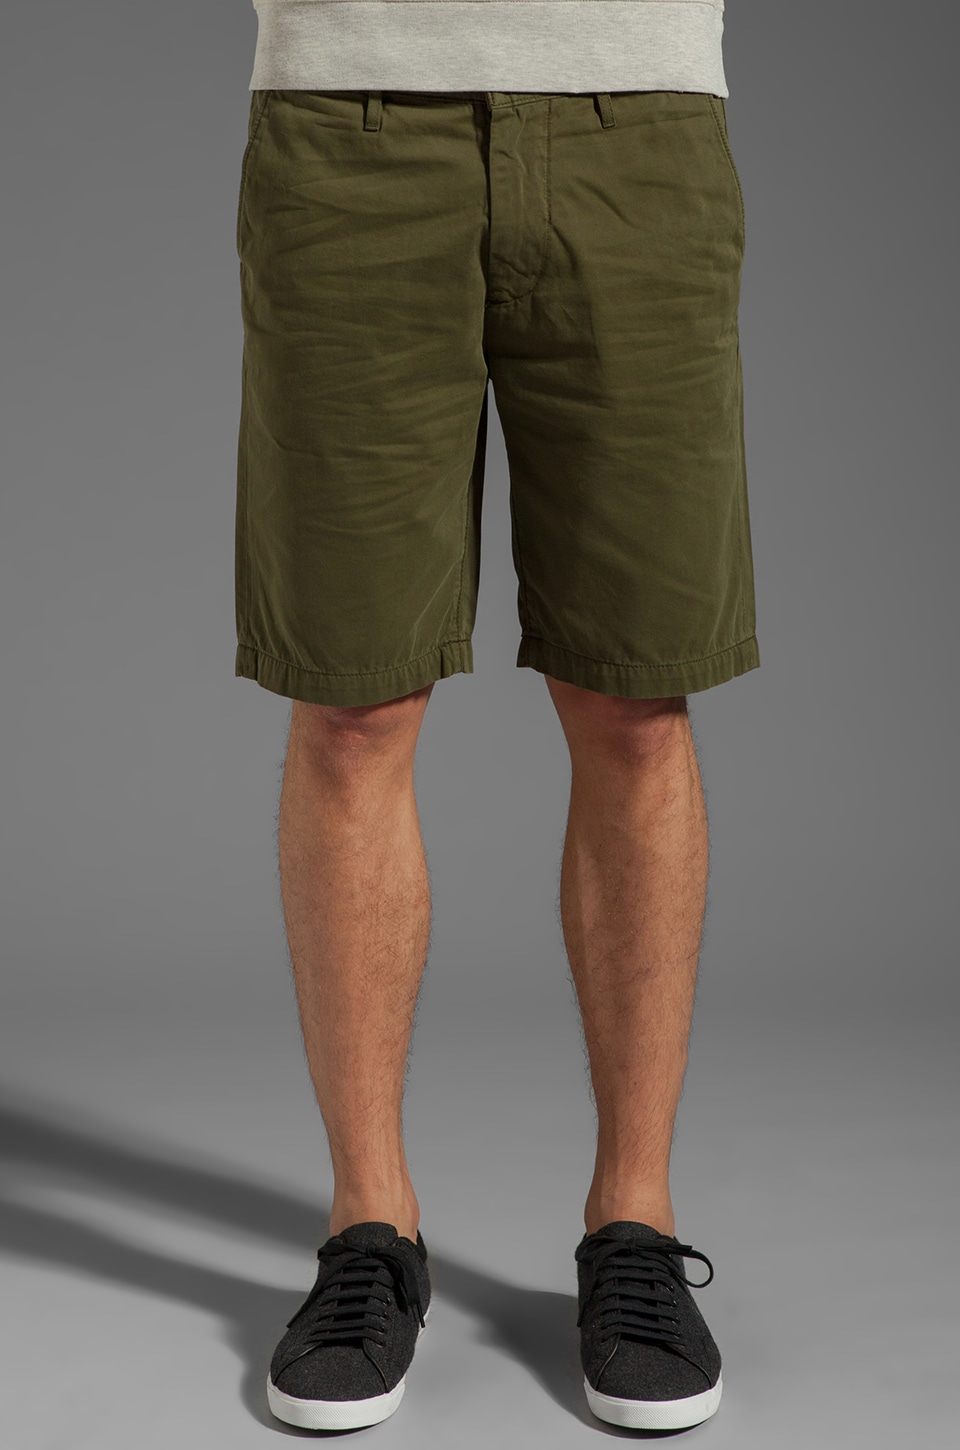 7 For All Mankind Chino Short in Leaf